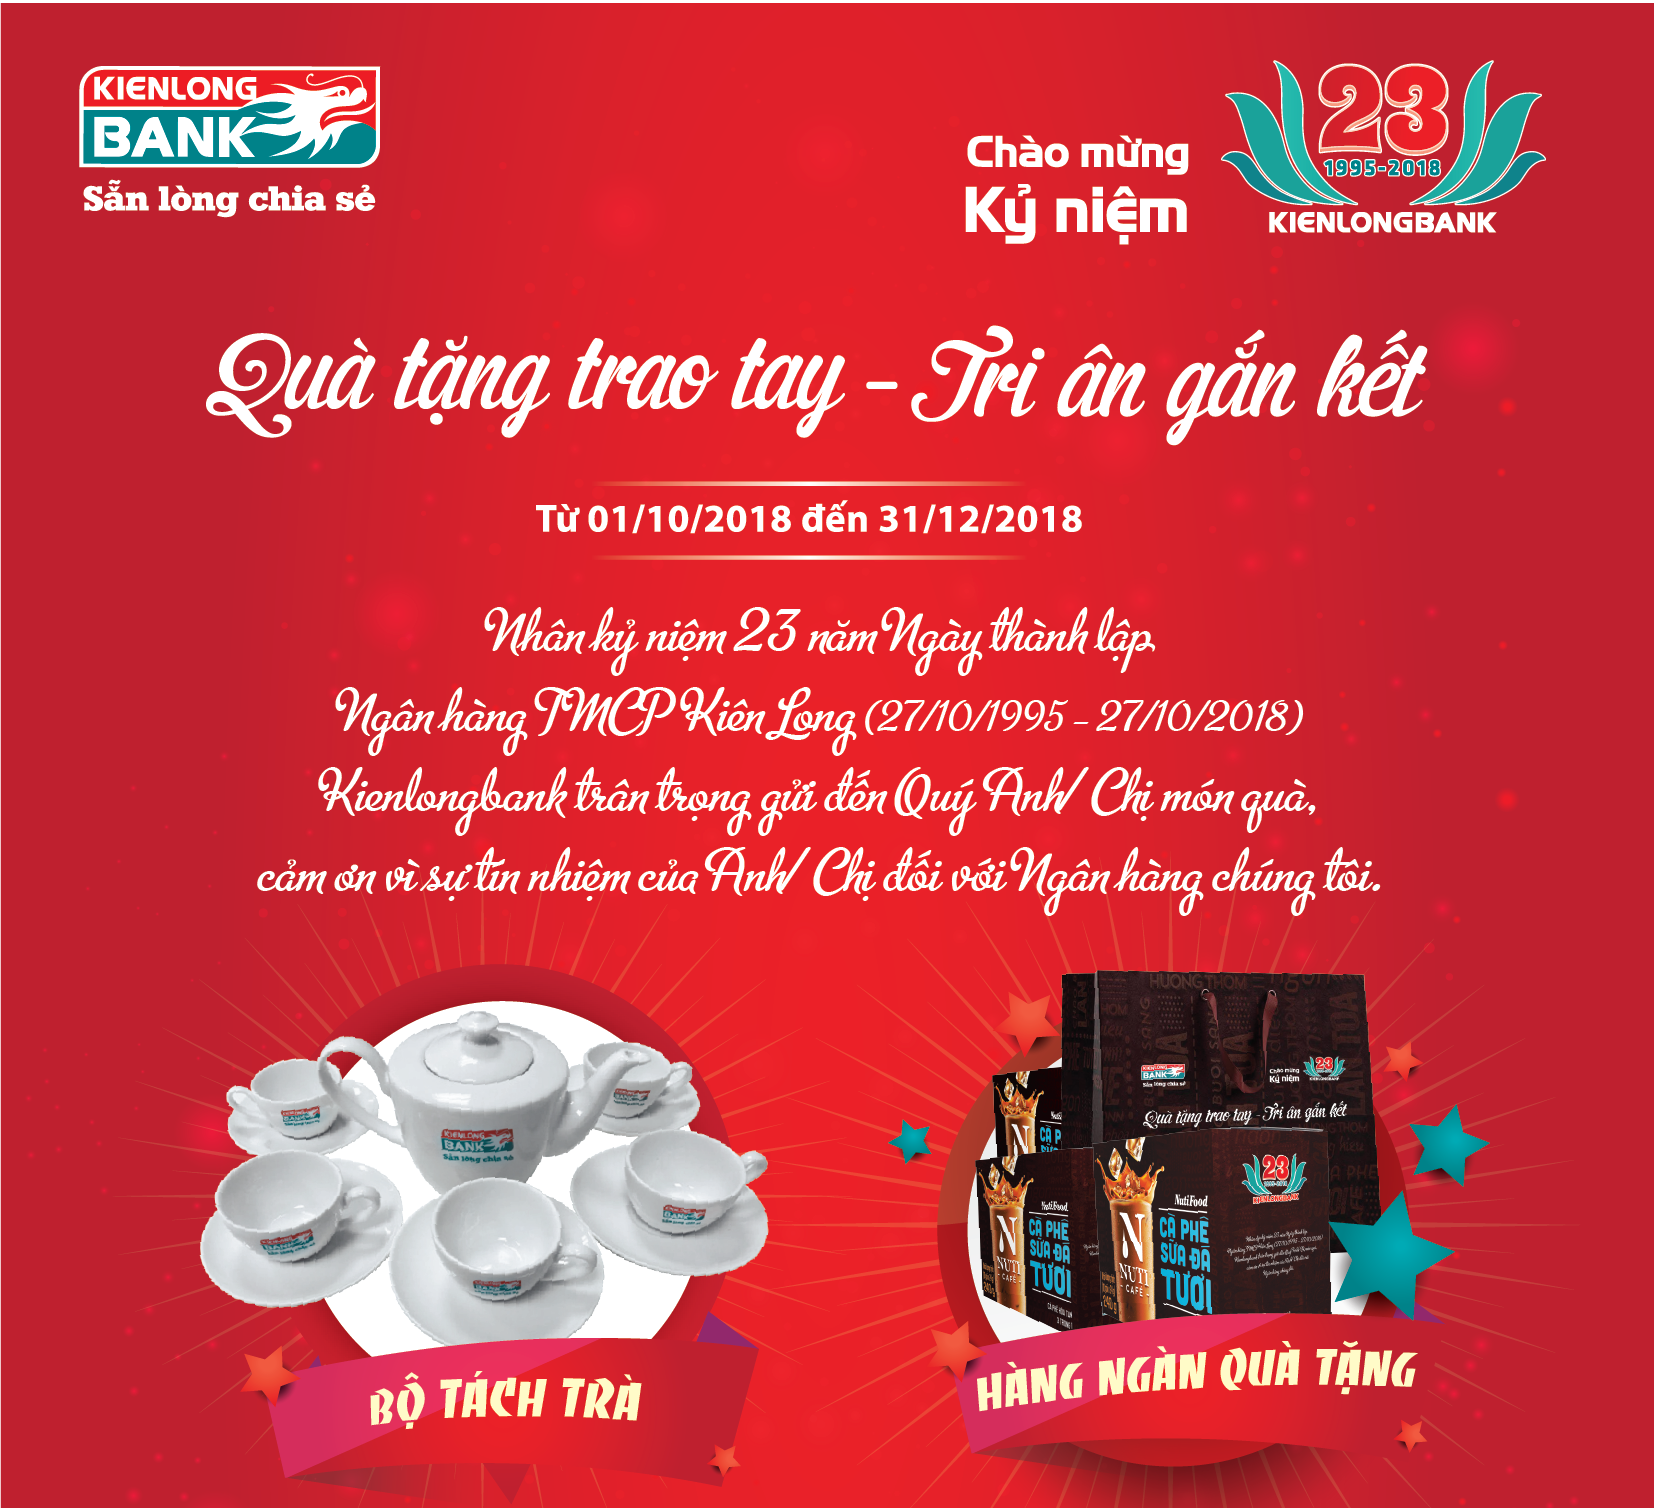 Handing gifts – Be grateful to customer for connecting in occasion of Kienlongbank 23rd Founding Anniversary